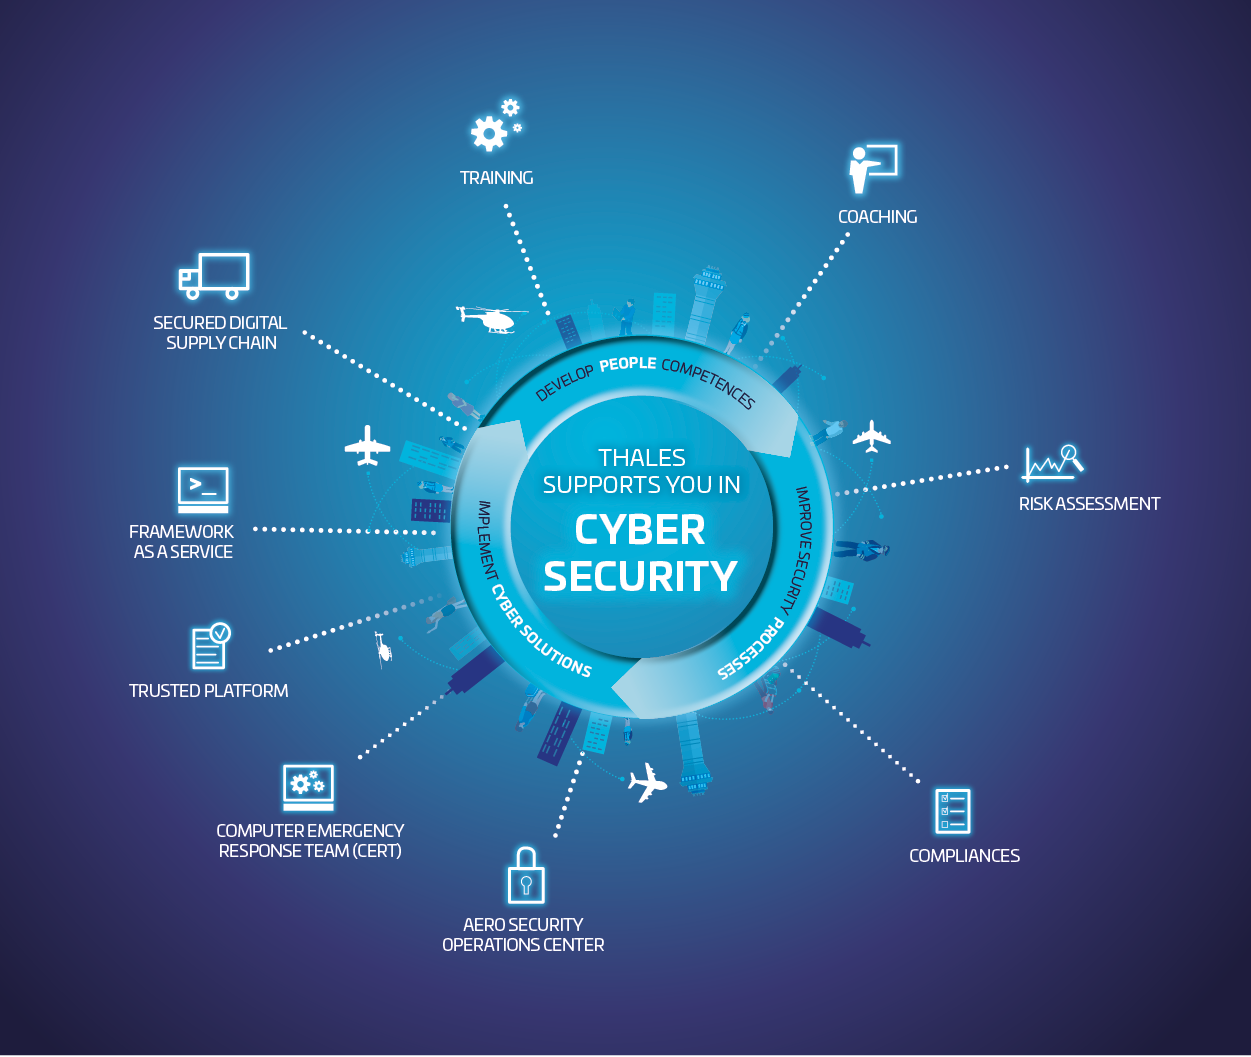 Thales_cybersecurity_copyright_Thales_2019